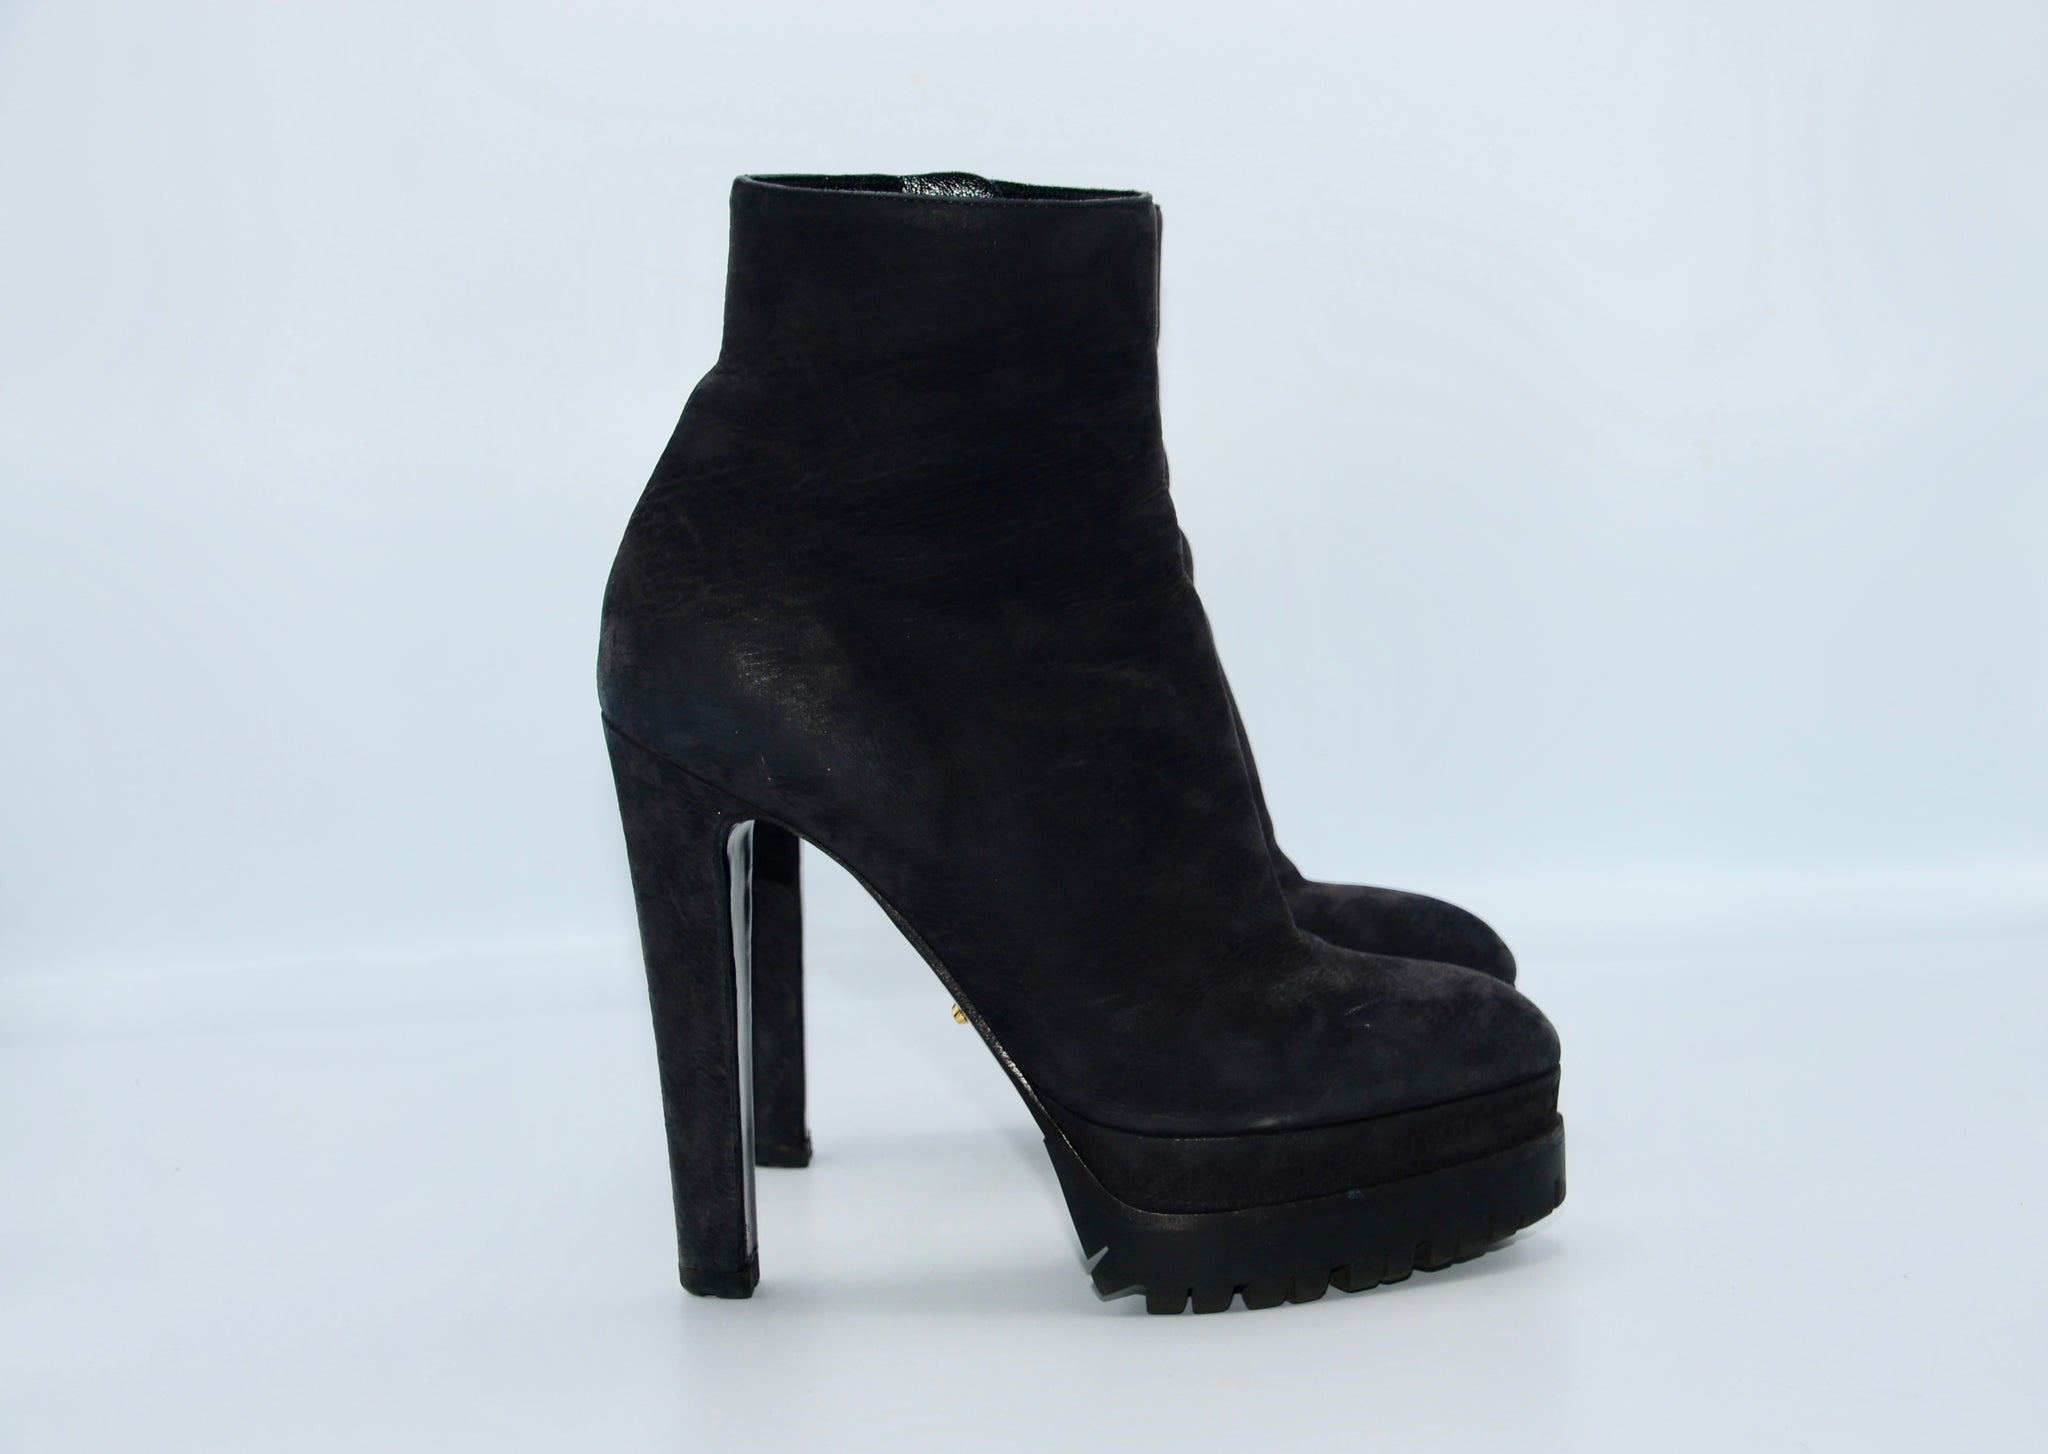 Sergio Rossi Boots - Iconics Preloved Luxury